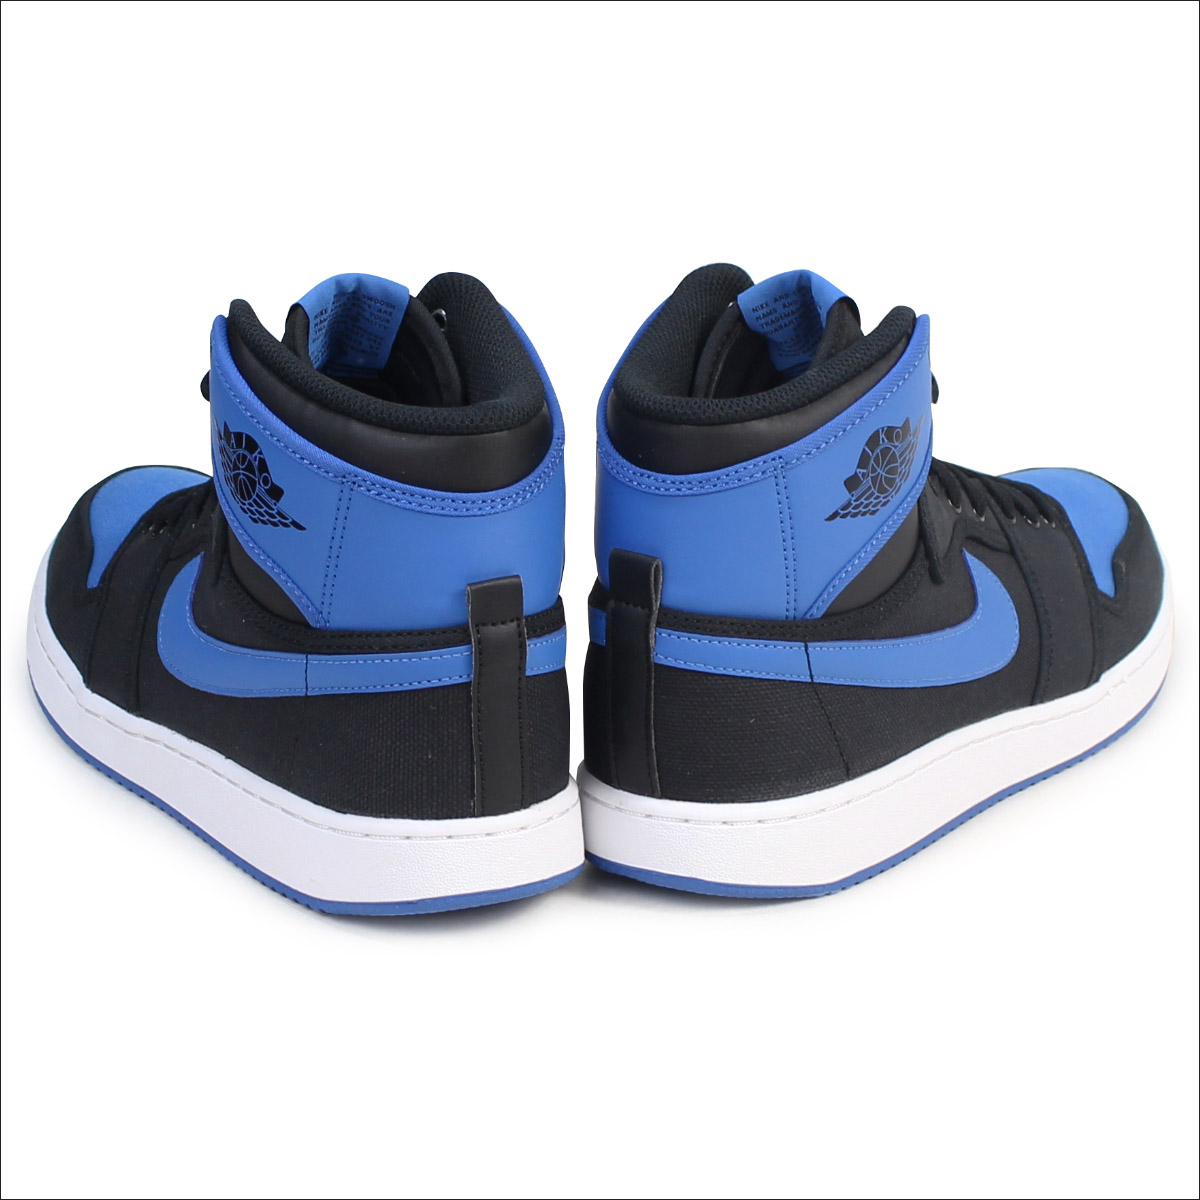 check out f6434 6f245  SOLD OUT  Nike NIKE Air Jordan 1 nostalgic high sneakers AIR JORDAN 1  RETRO KO HIGH OG 638,471-007 men s shoes black